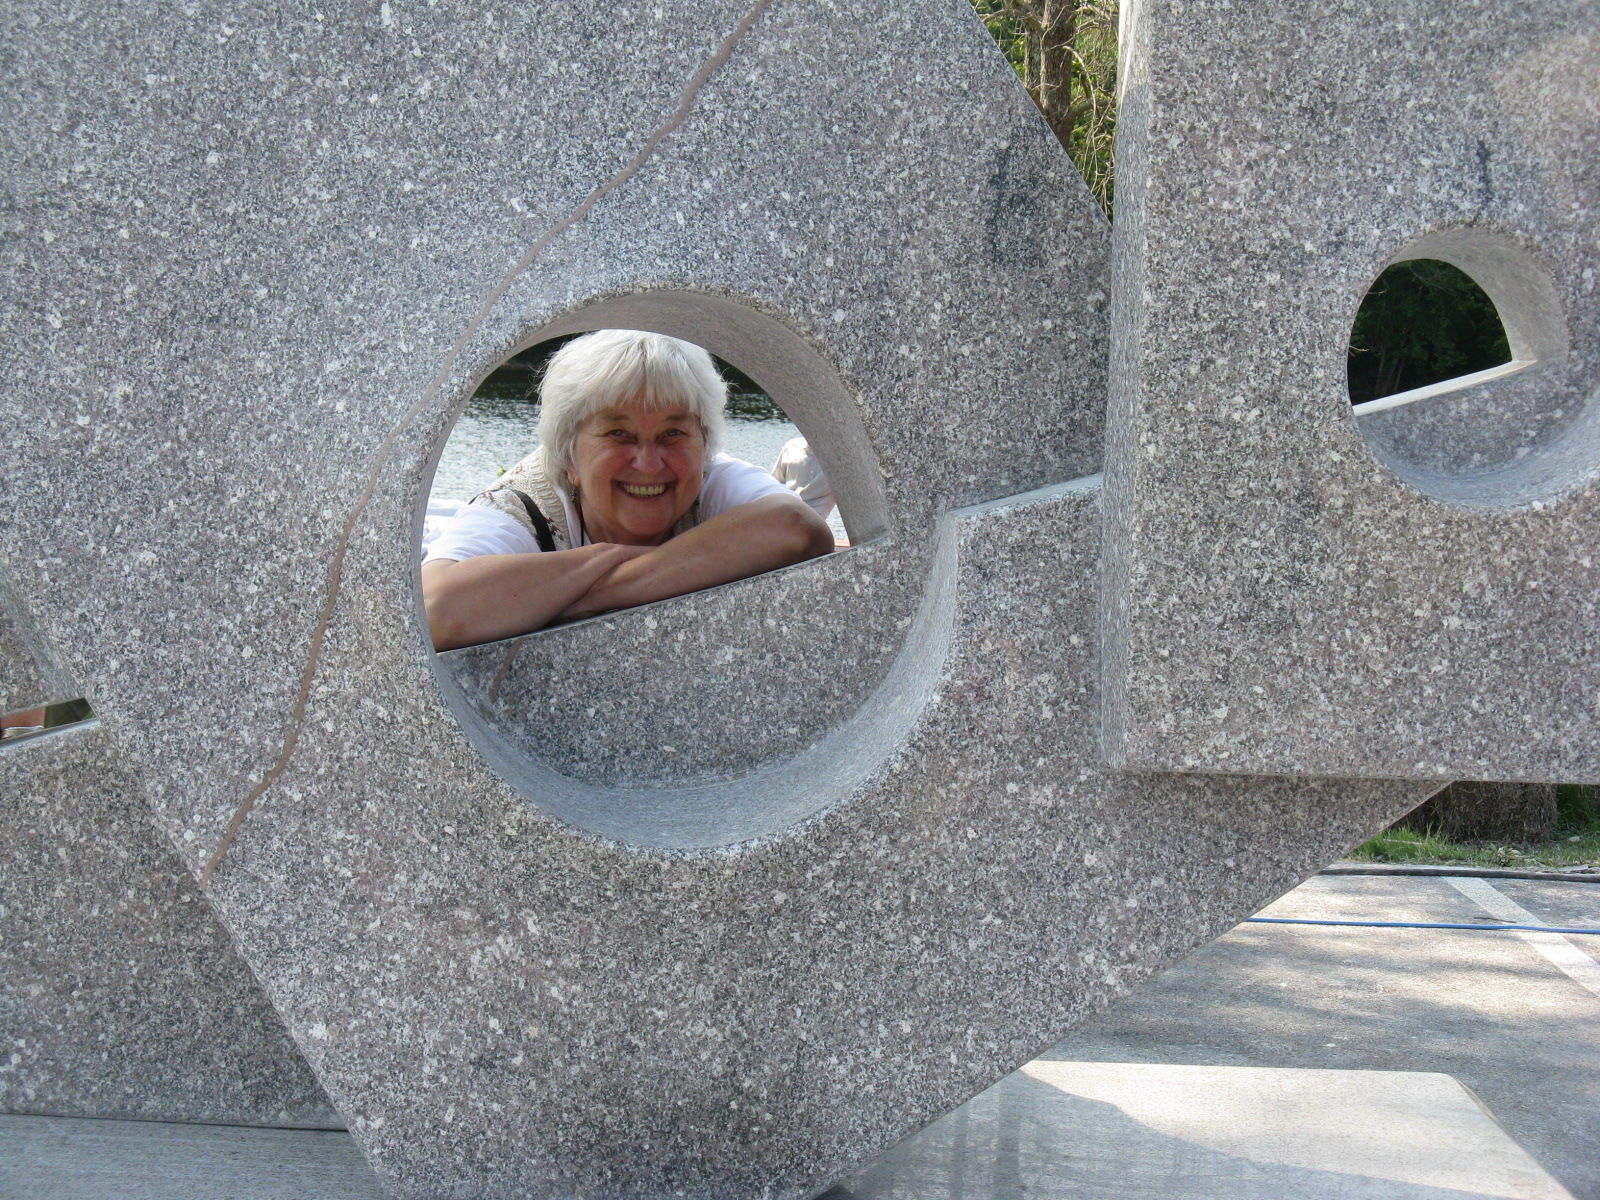 Judith smiling at camera, looking through gap in concrete sculpture